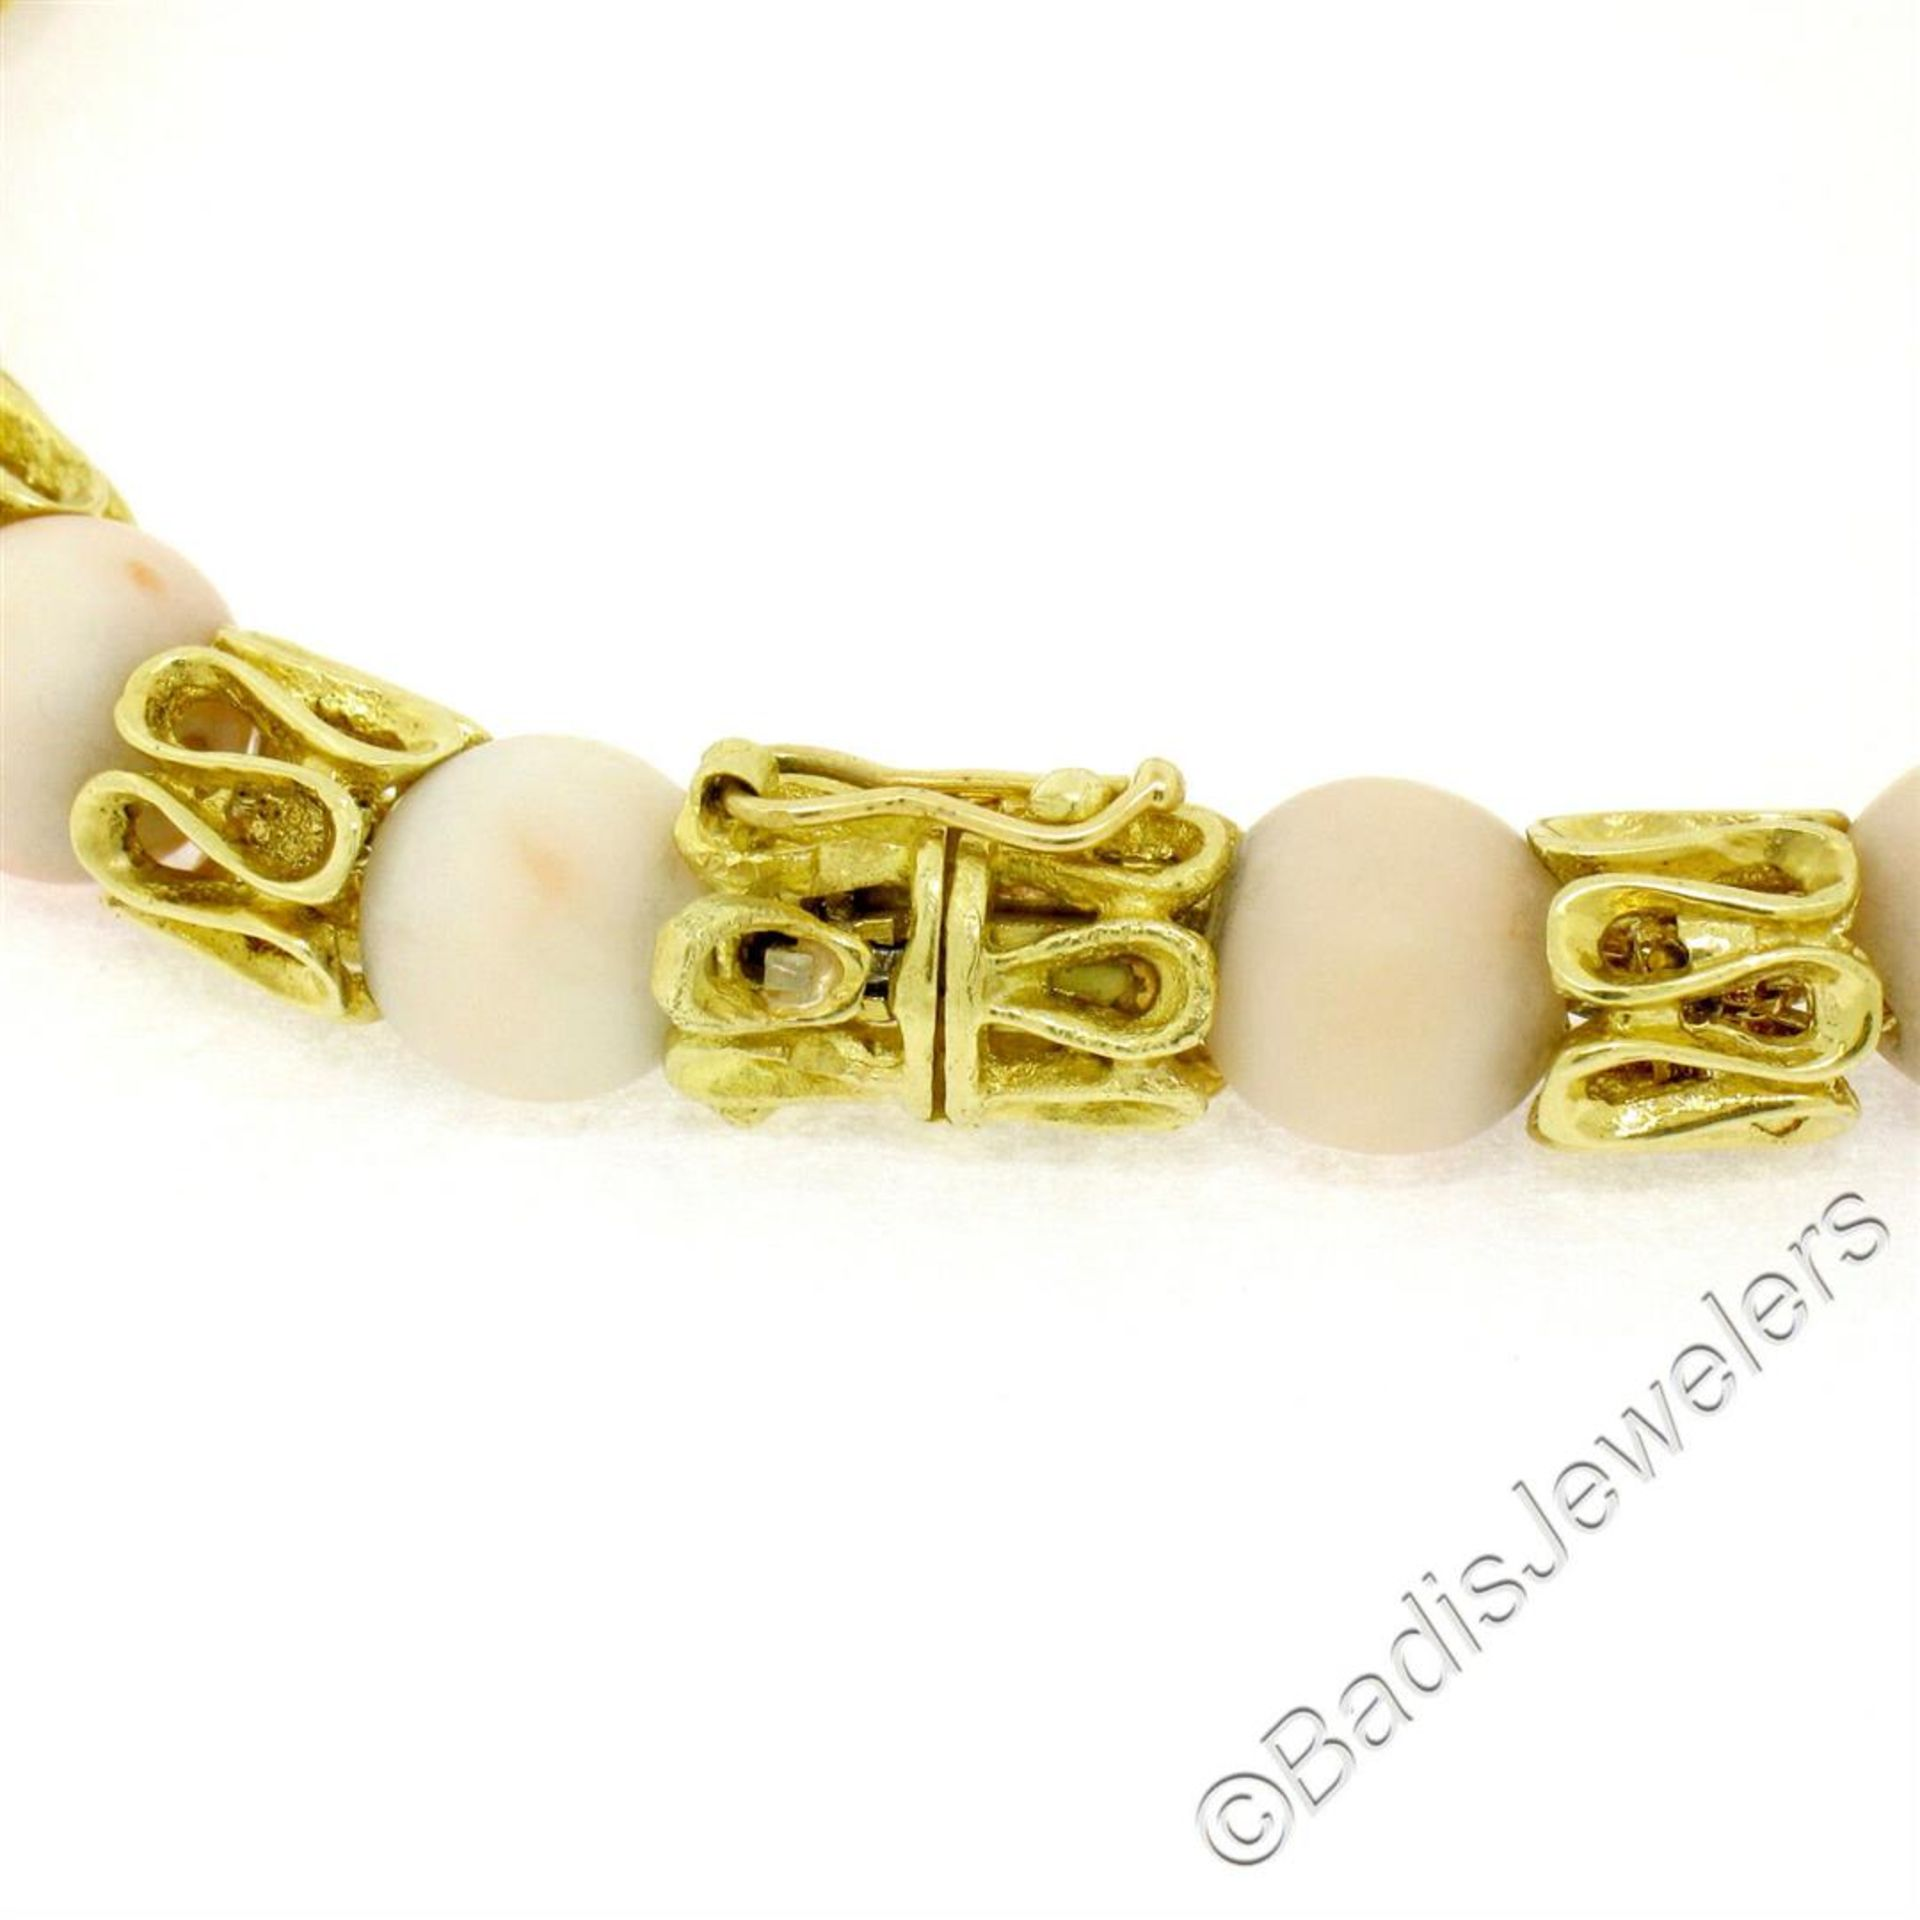 Vintage 18kt Yellow Gold Twisted Link Bracelet w/ Matching Angel Skin Coral Bead - Image 5 of 6